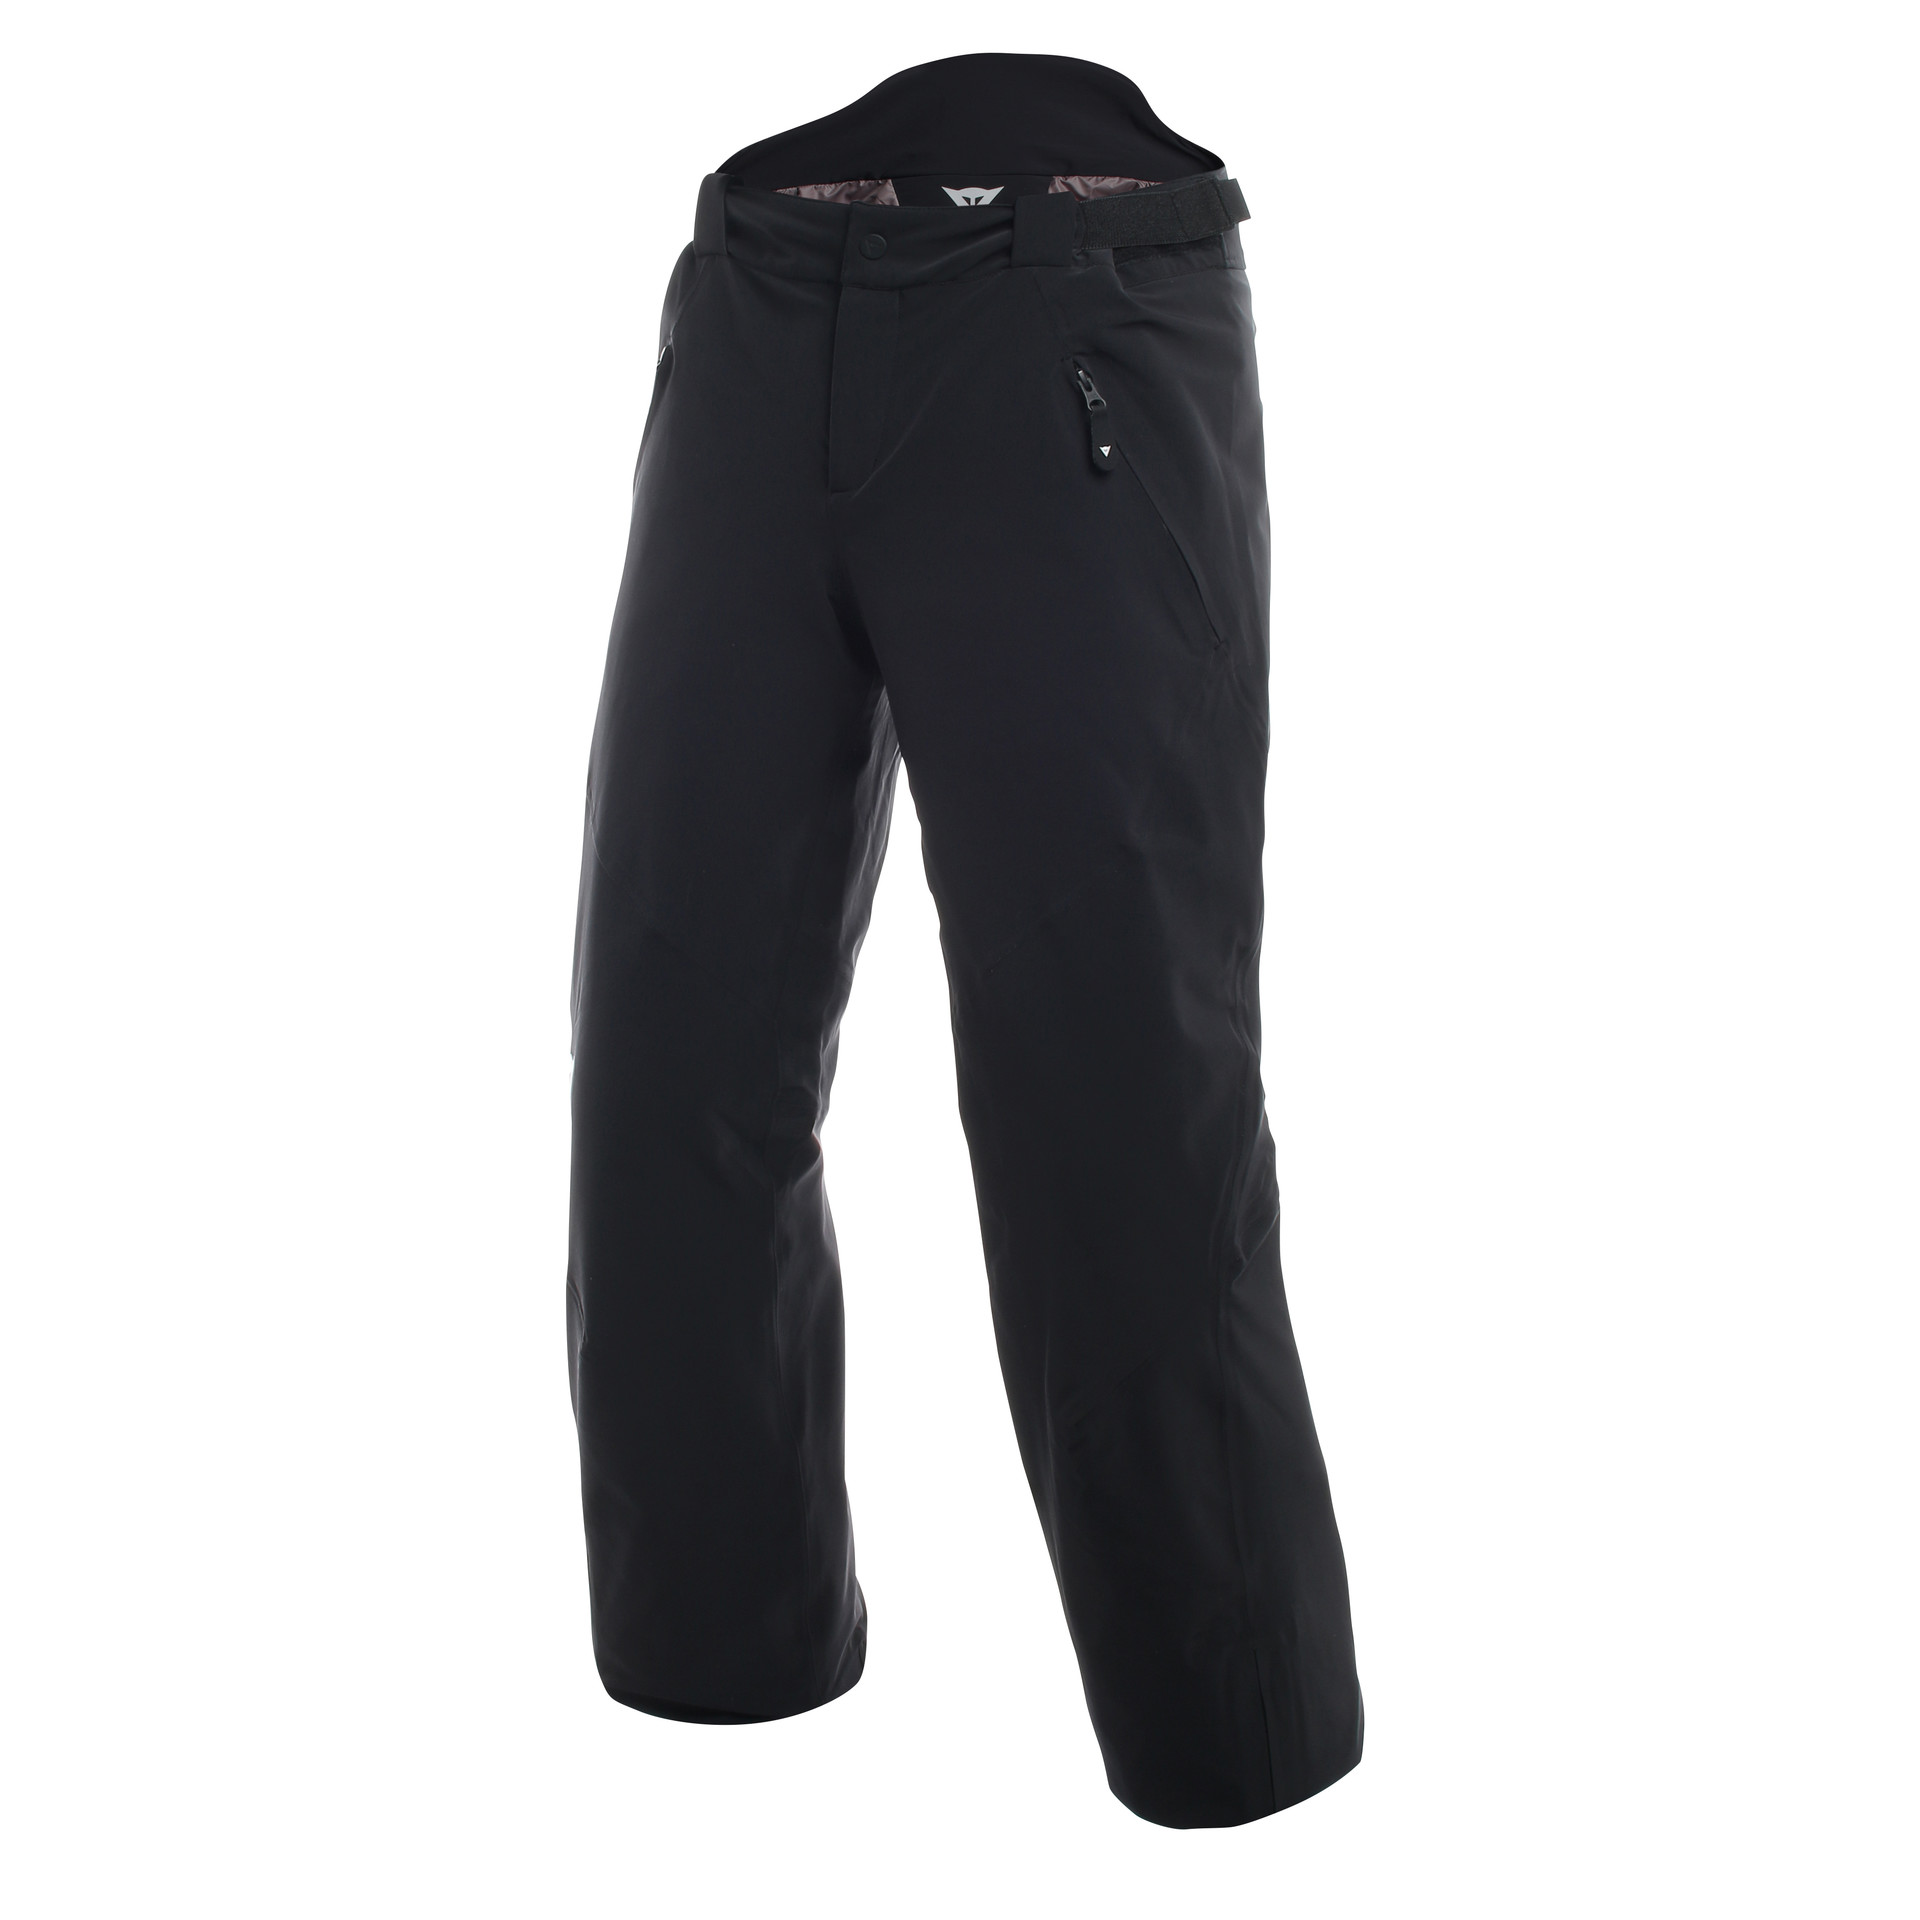 DAINESE PANT. HP2 P M1 - (Y41 STRETCH LIMO ) - 2019